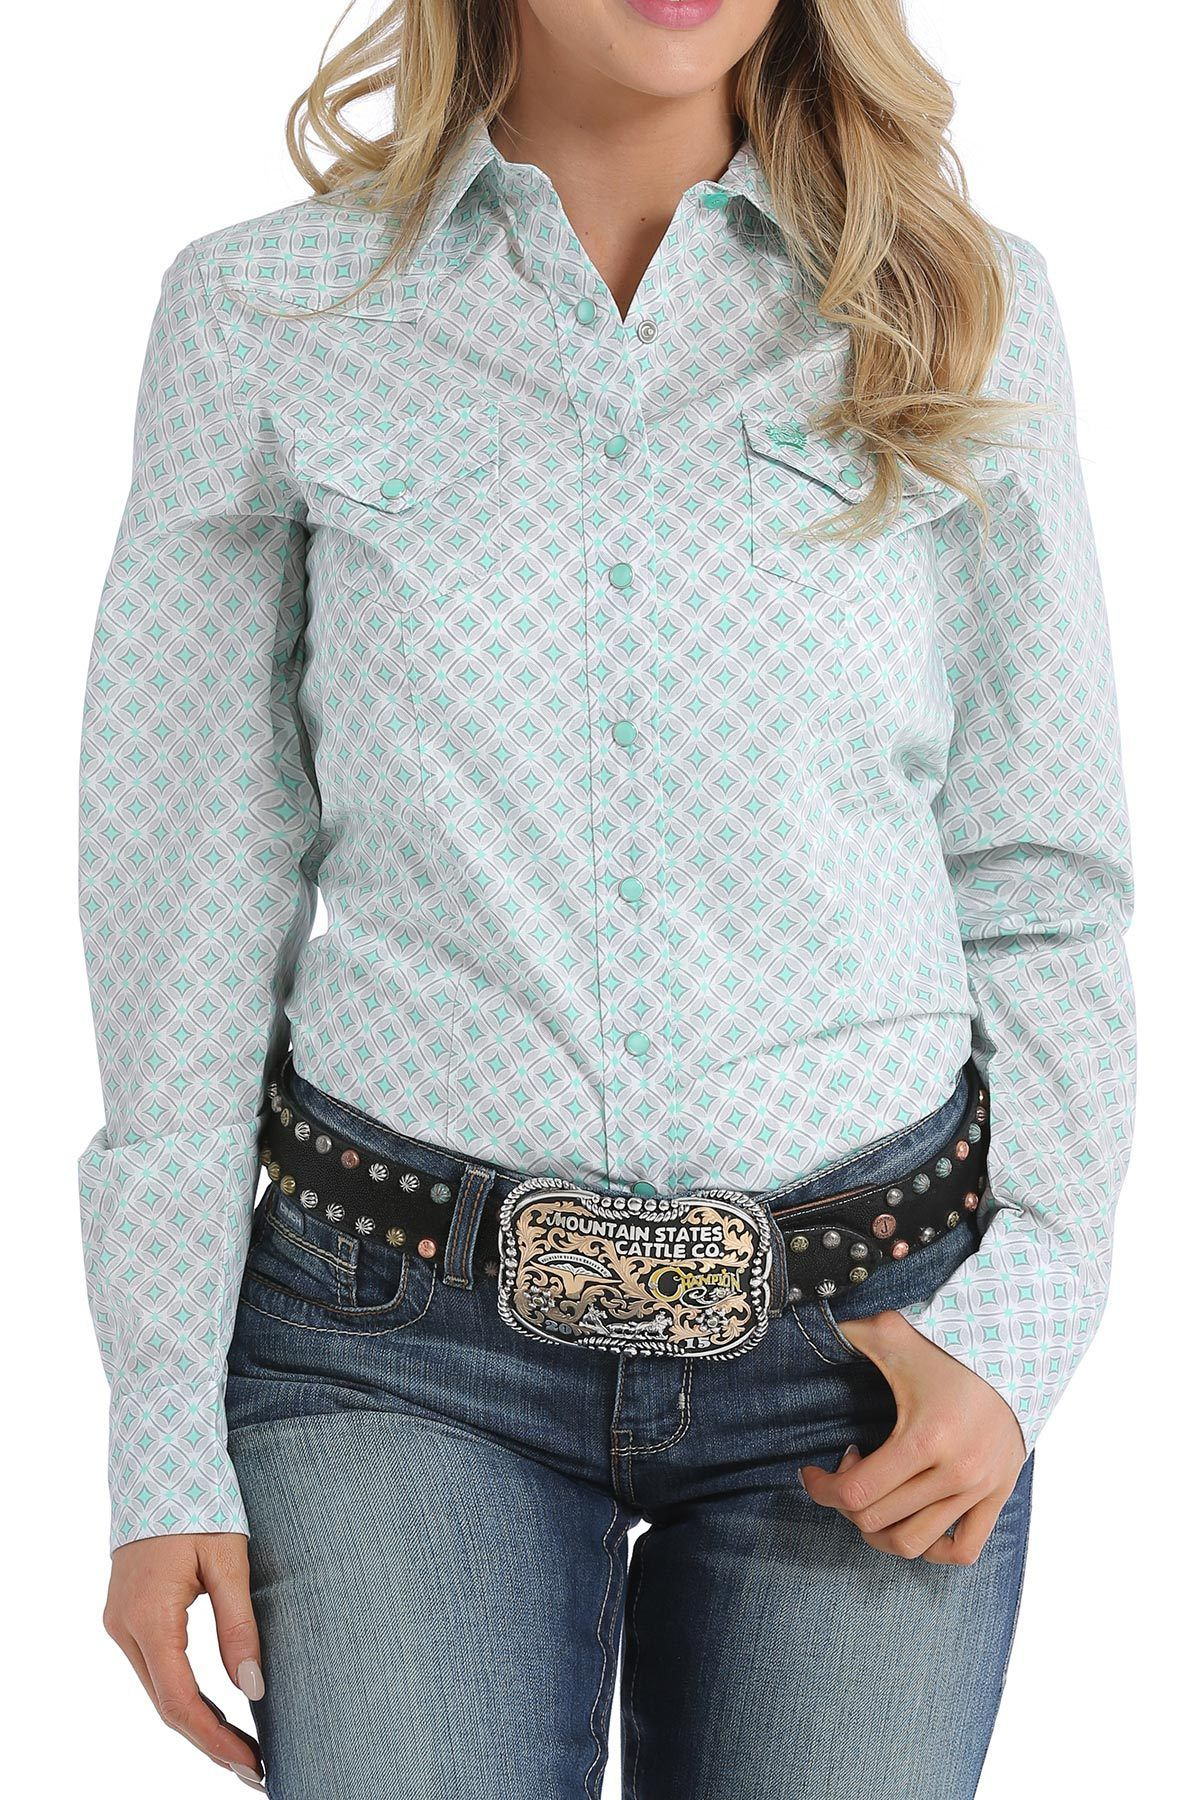 3d0b1f27d Cinch Women's Mint/Gray Diamond Print Long Sleeve Snap Shirt ...